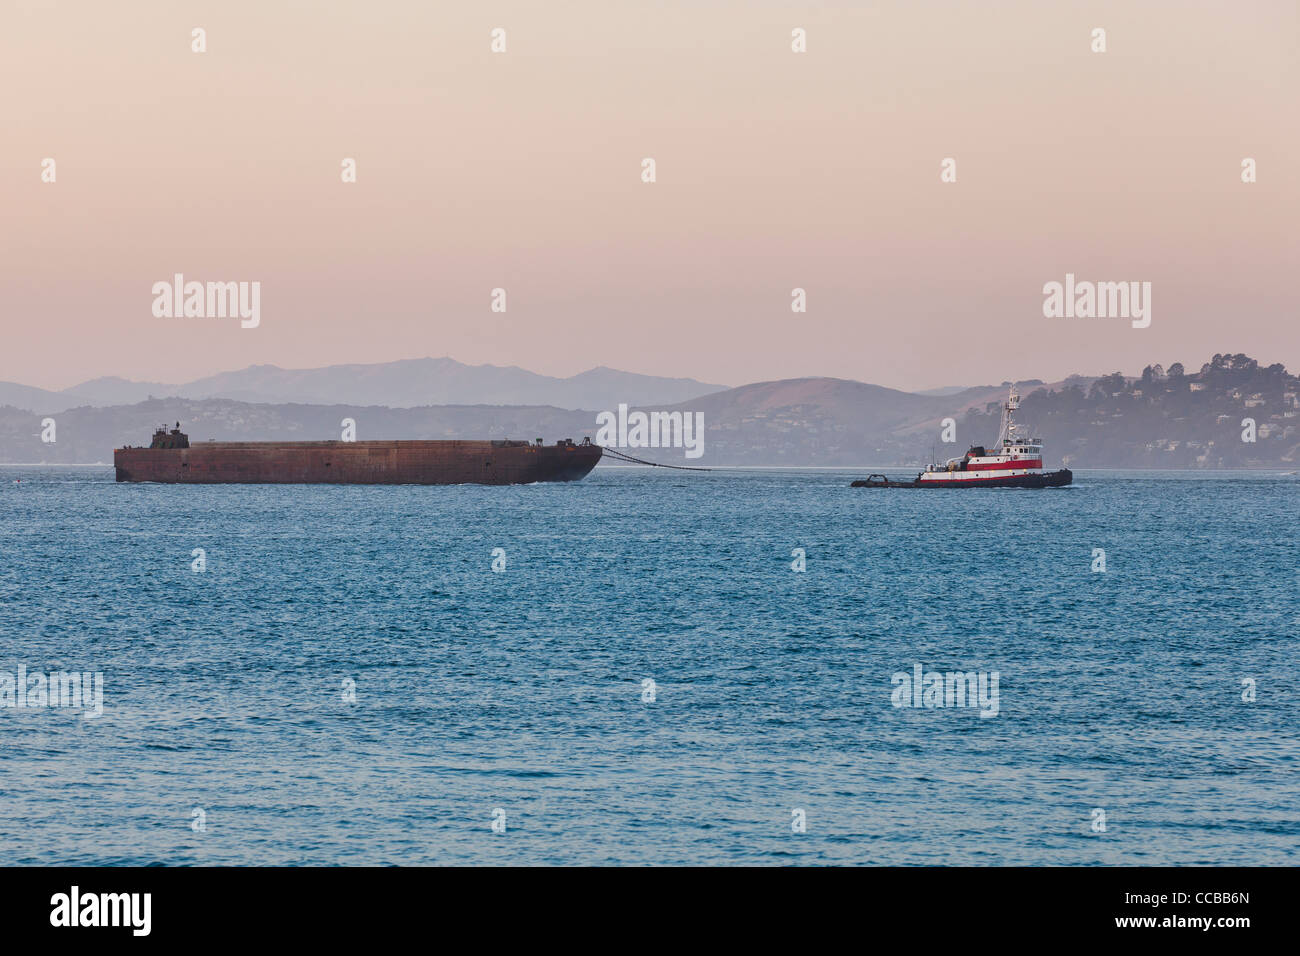 A barge being towed by tugboat - Stock Image